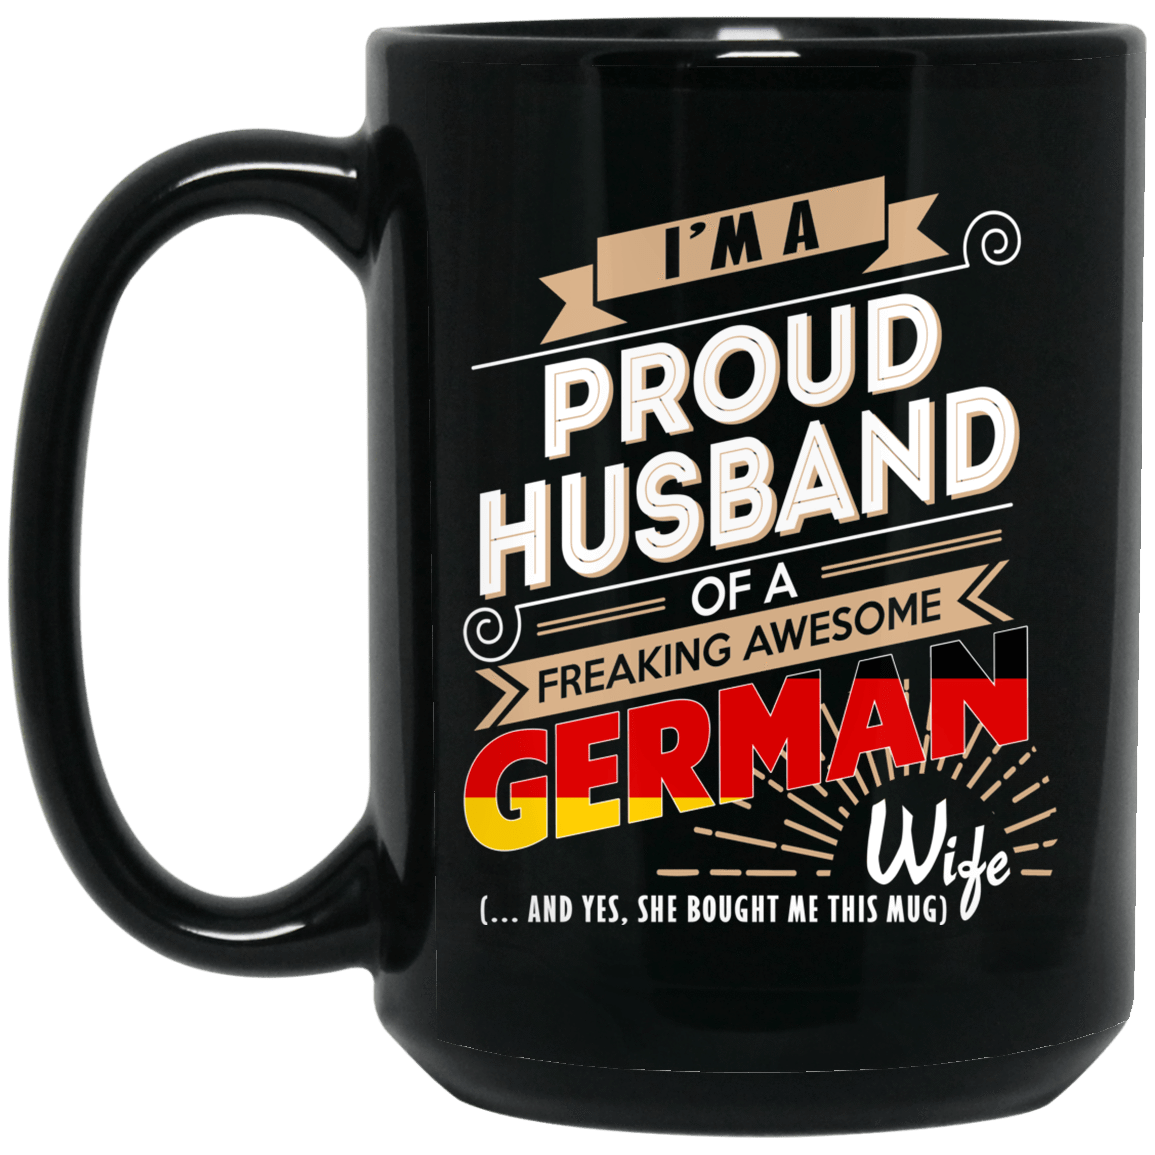 Proud Husband Of A Freaking Awesome German Wife Mug 1066-10182-72136526-49311 - Tee Ript